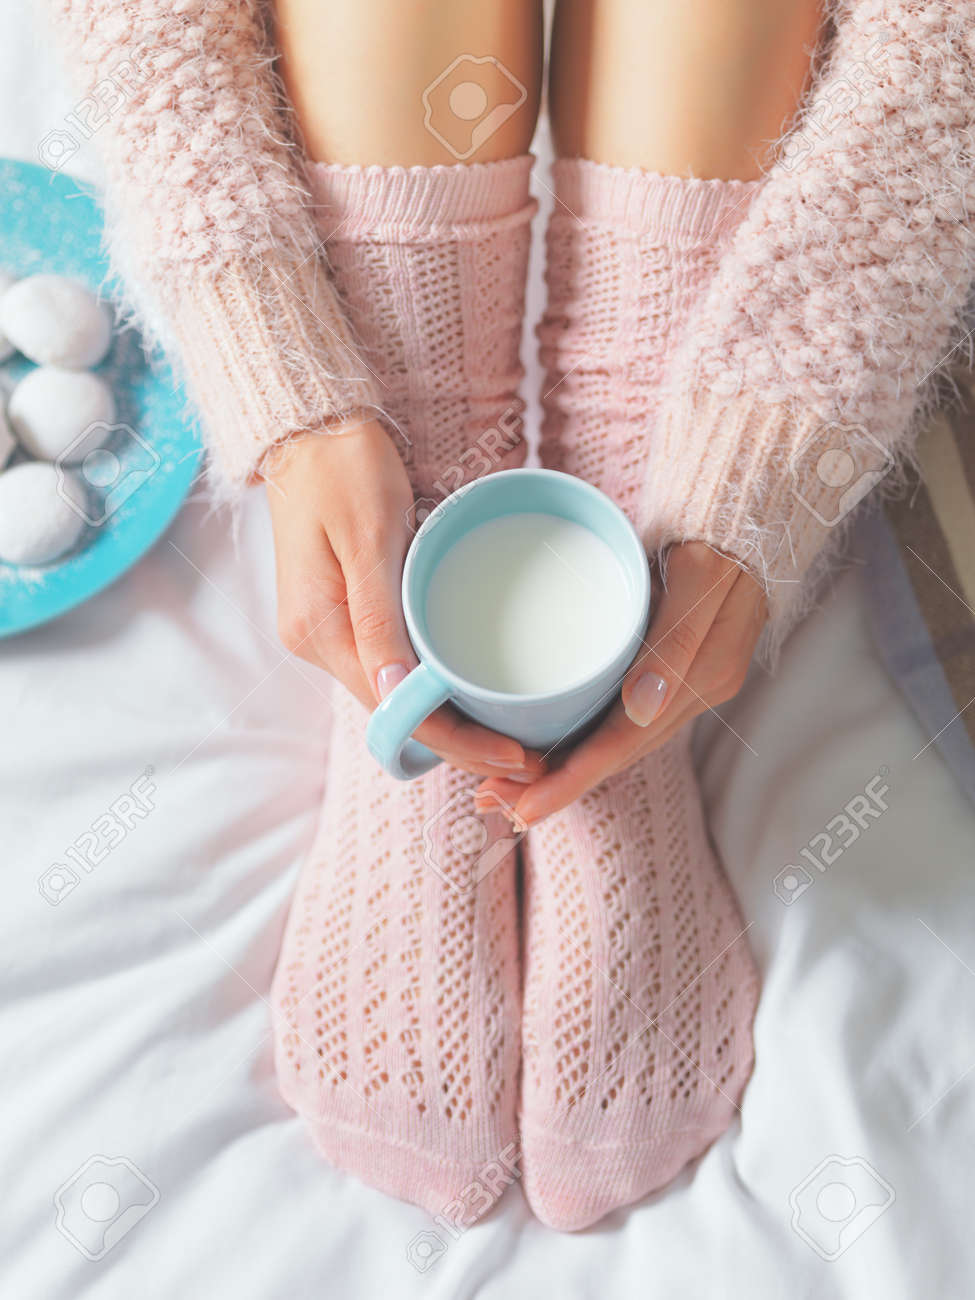 Woman relaxing at cozy home atmosphere on the bed. Young woman with cup of milk in hands and cookies enjoying comfort. Soft light and comfy lifestyle concept. - 41581616